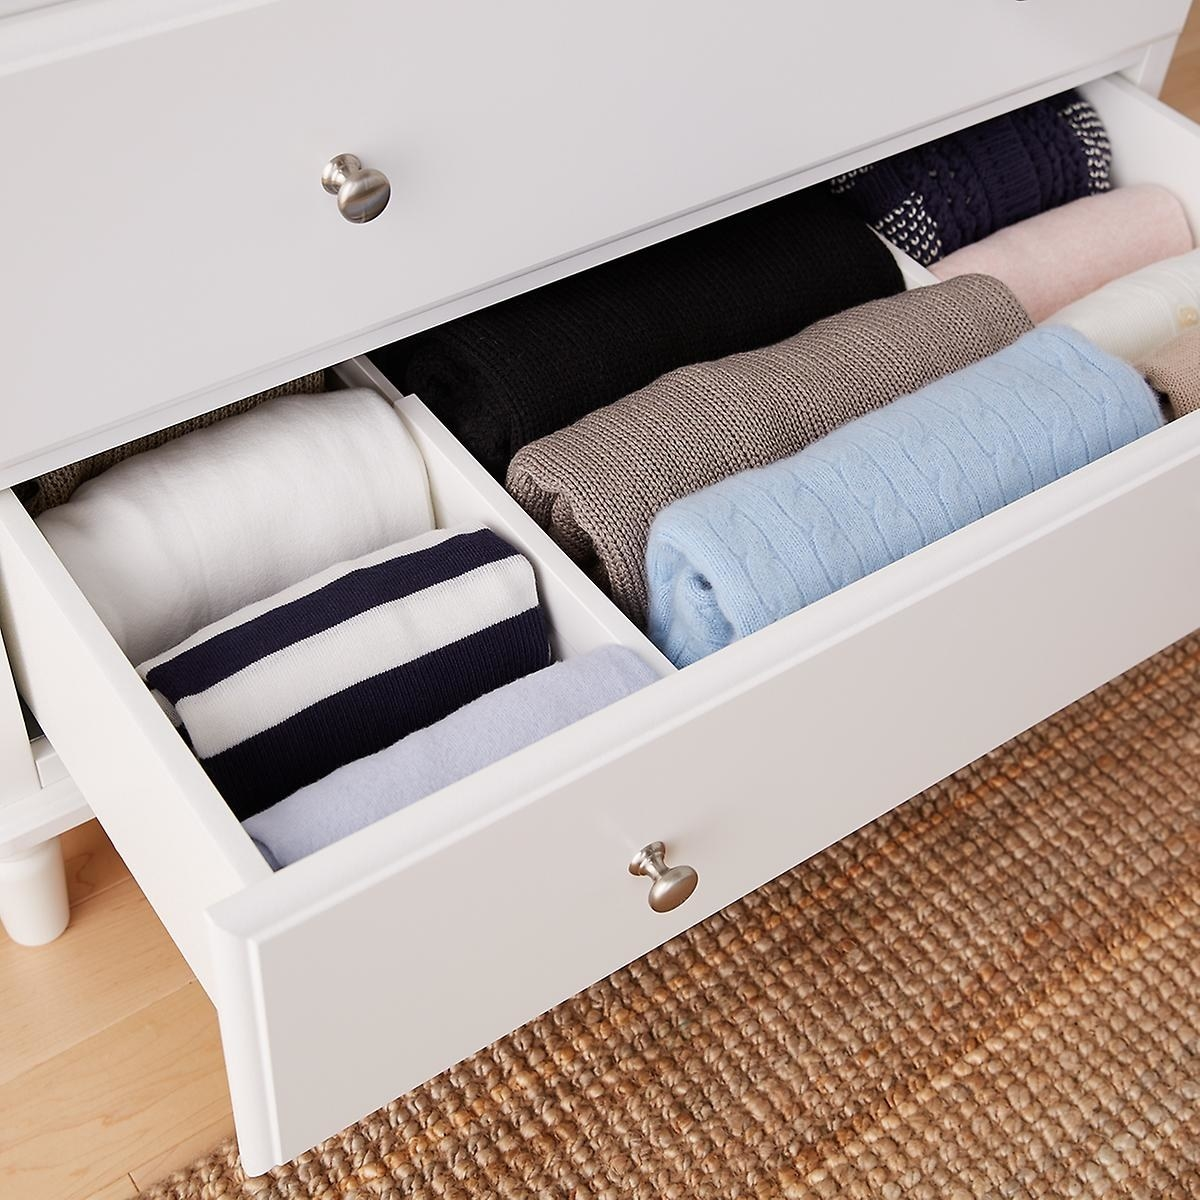 Expandable drawer organizers inserted into drawer